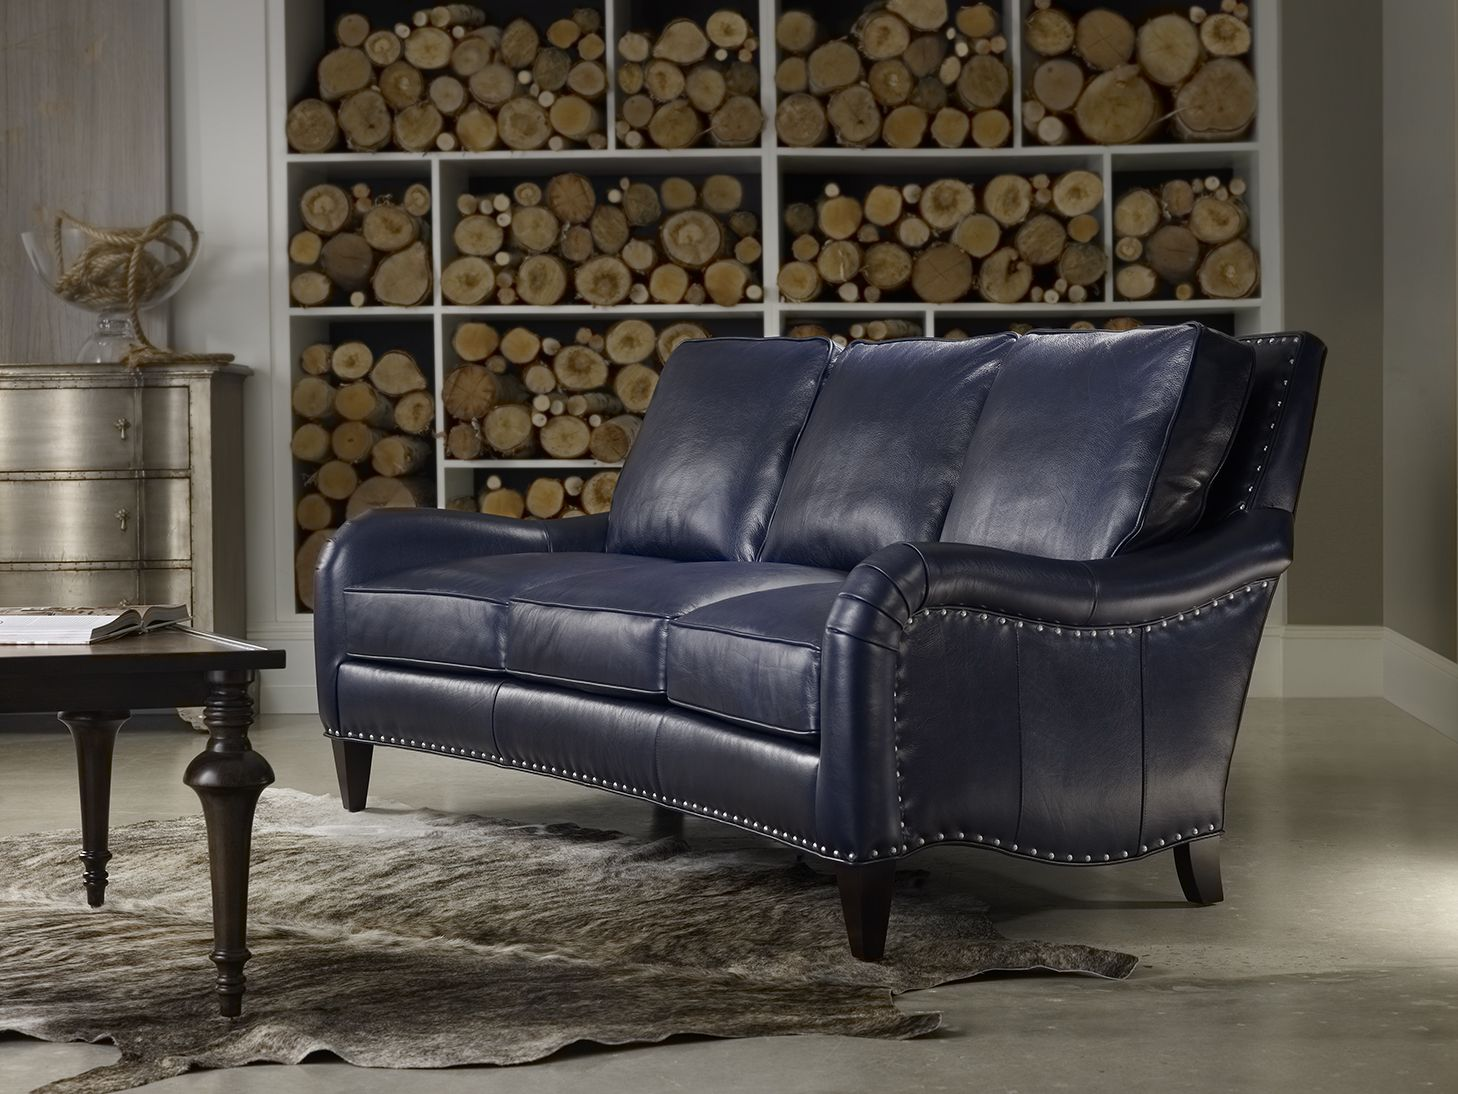 Best Feeling Blue Bradington Young Barth Sofa In Cobalt Blue Leather Sofa Living Room Seating 400 x 300